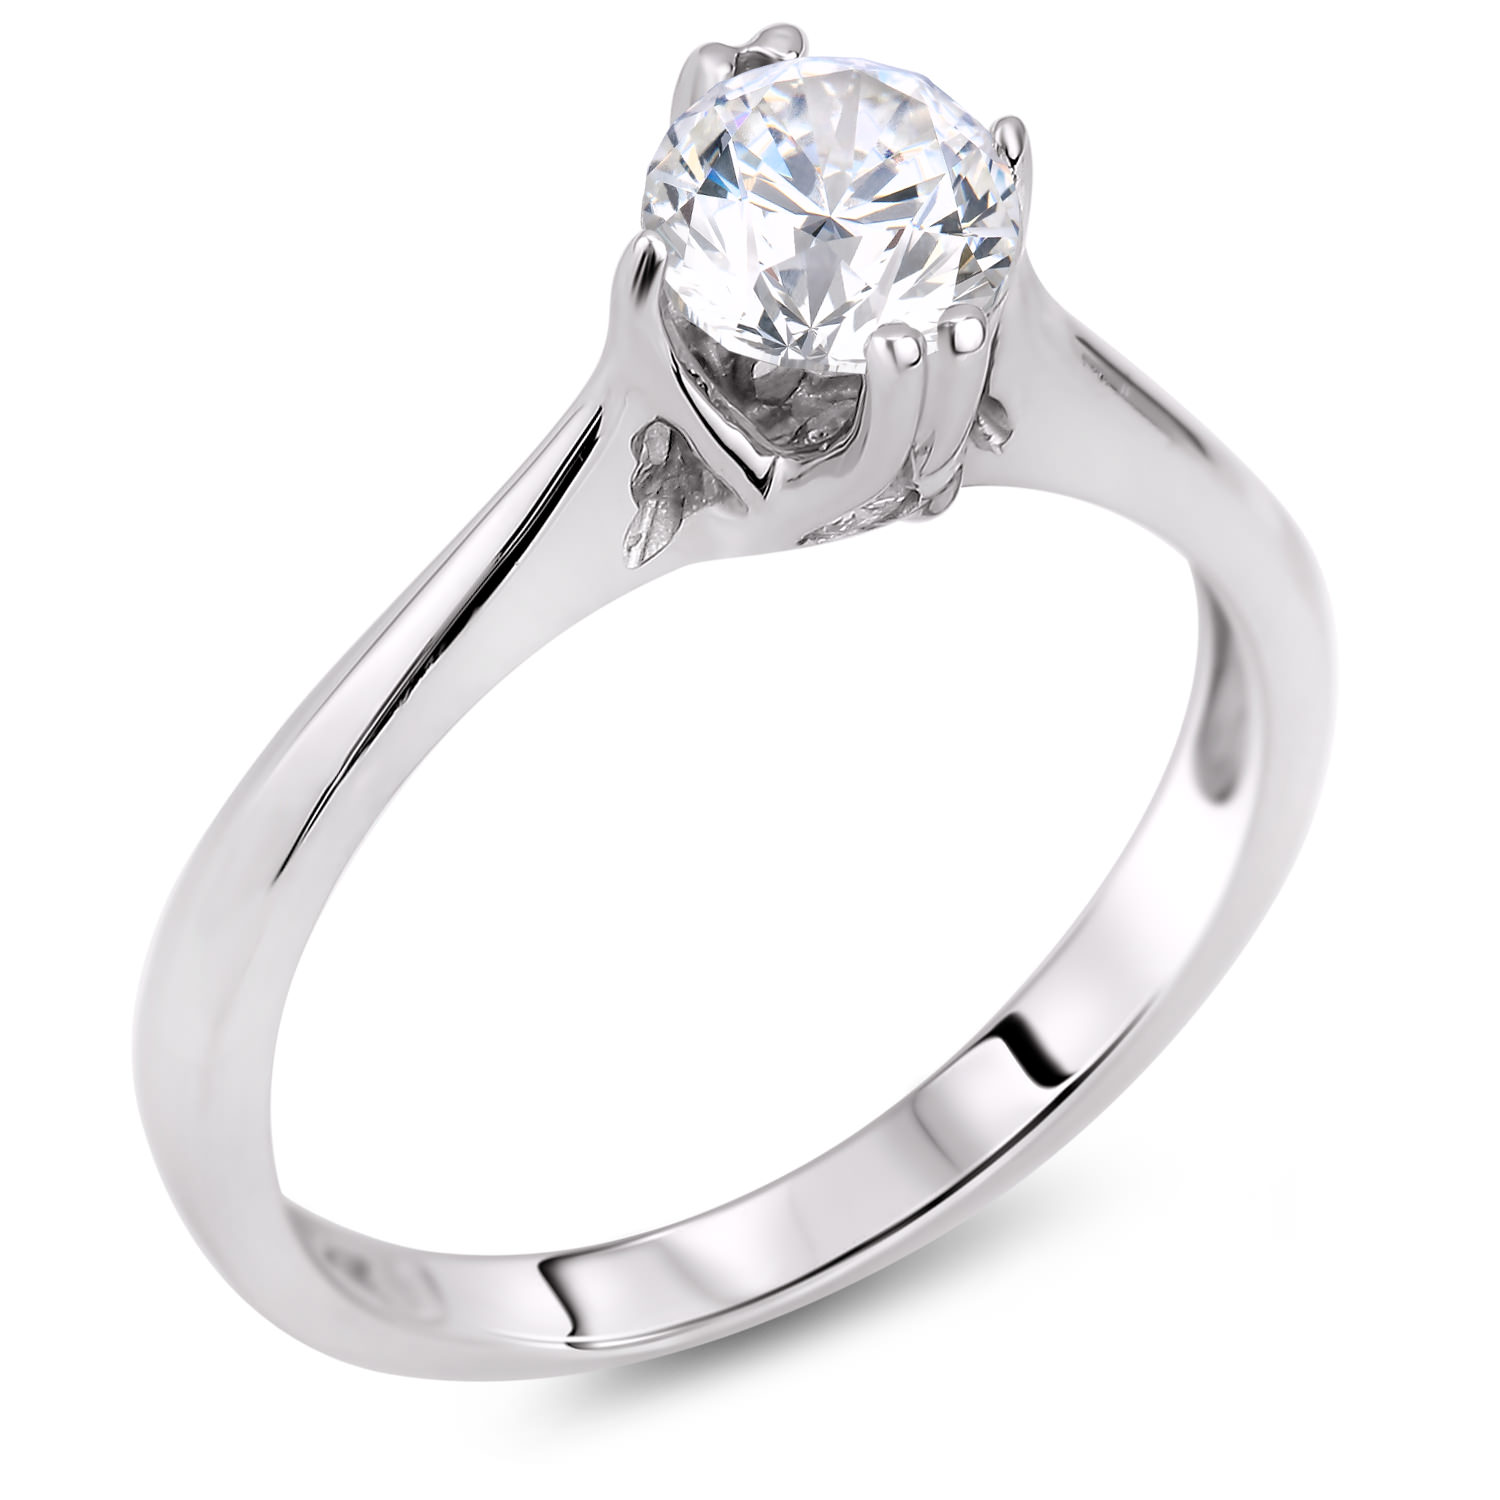 Diamond Solitaire Rings SEC2425 (Rings)